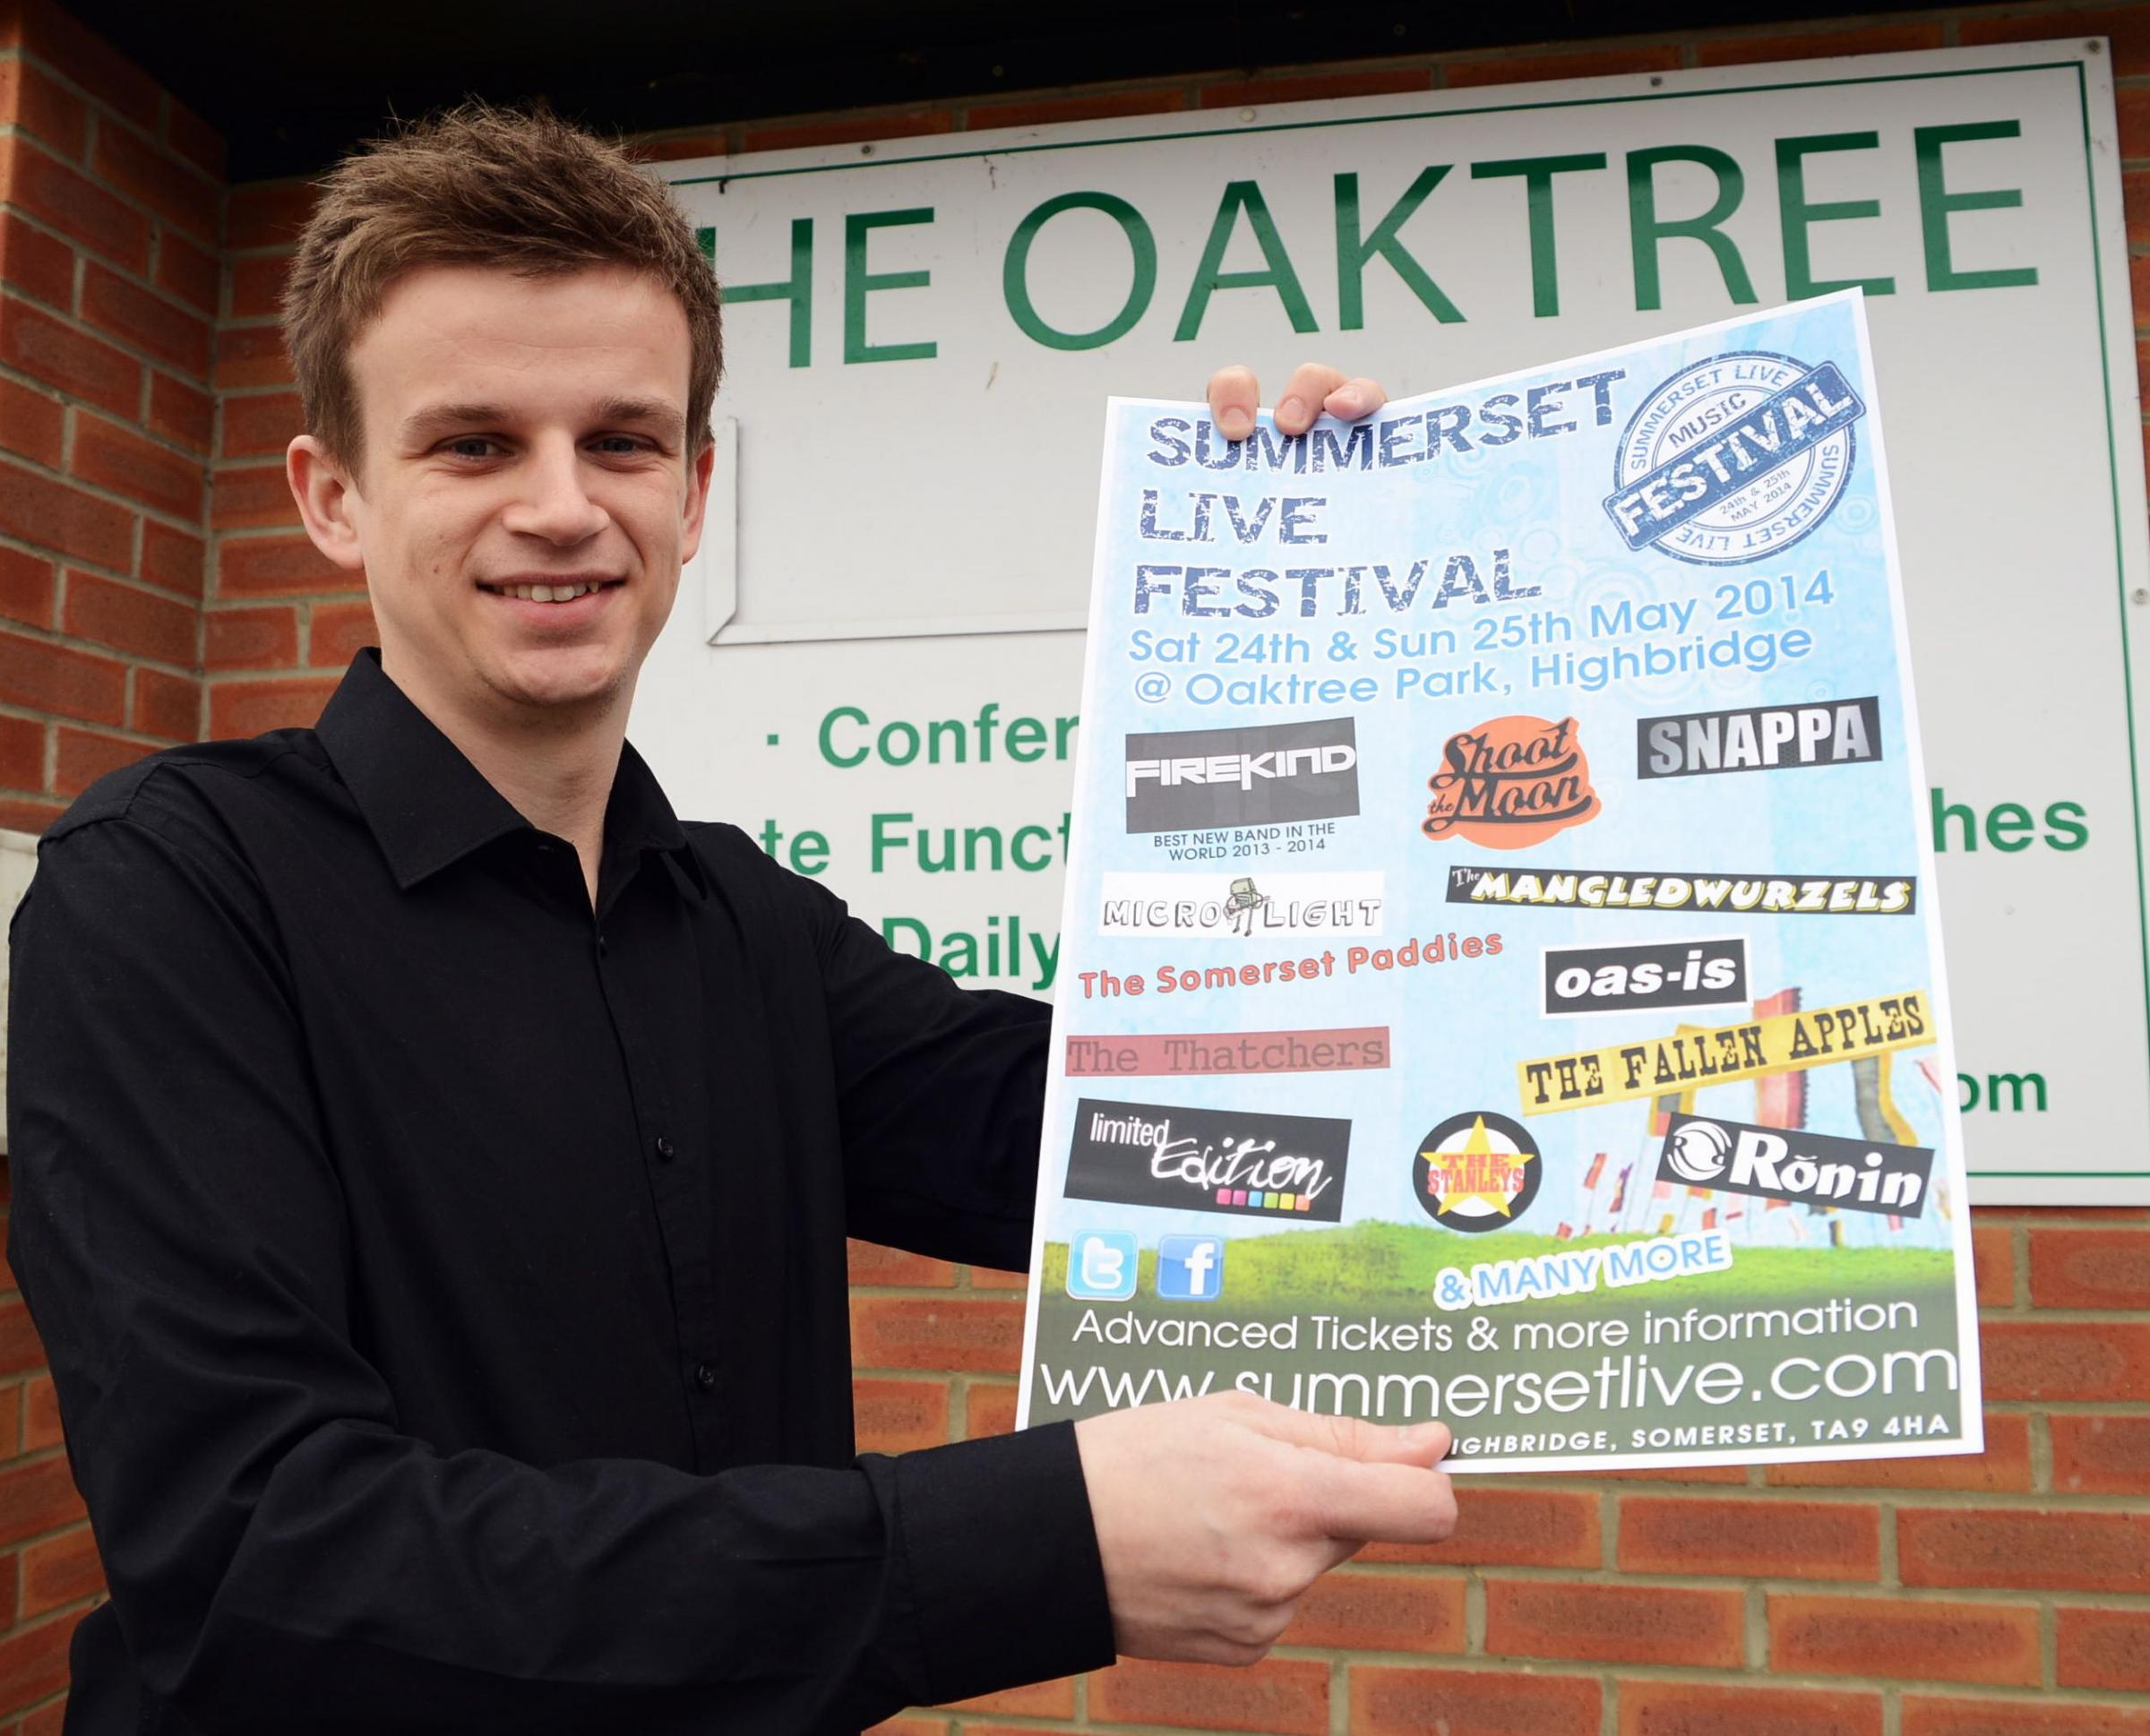 Jordan Jones, festival organiser, with the festival poster outside the Oaktree